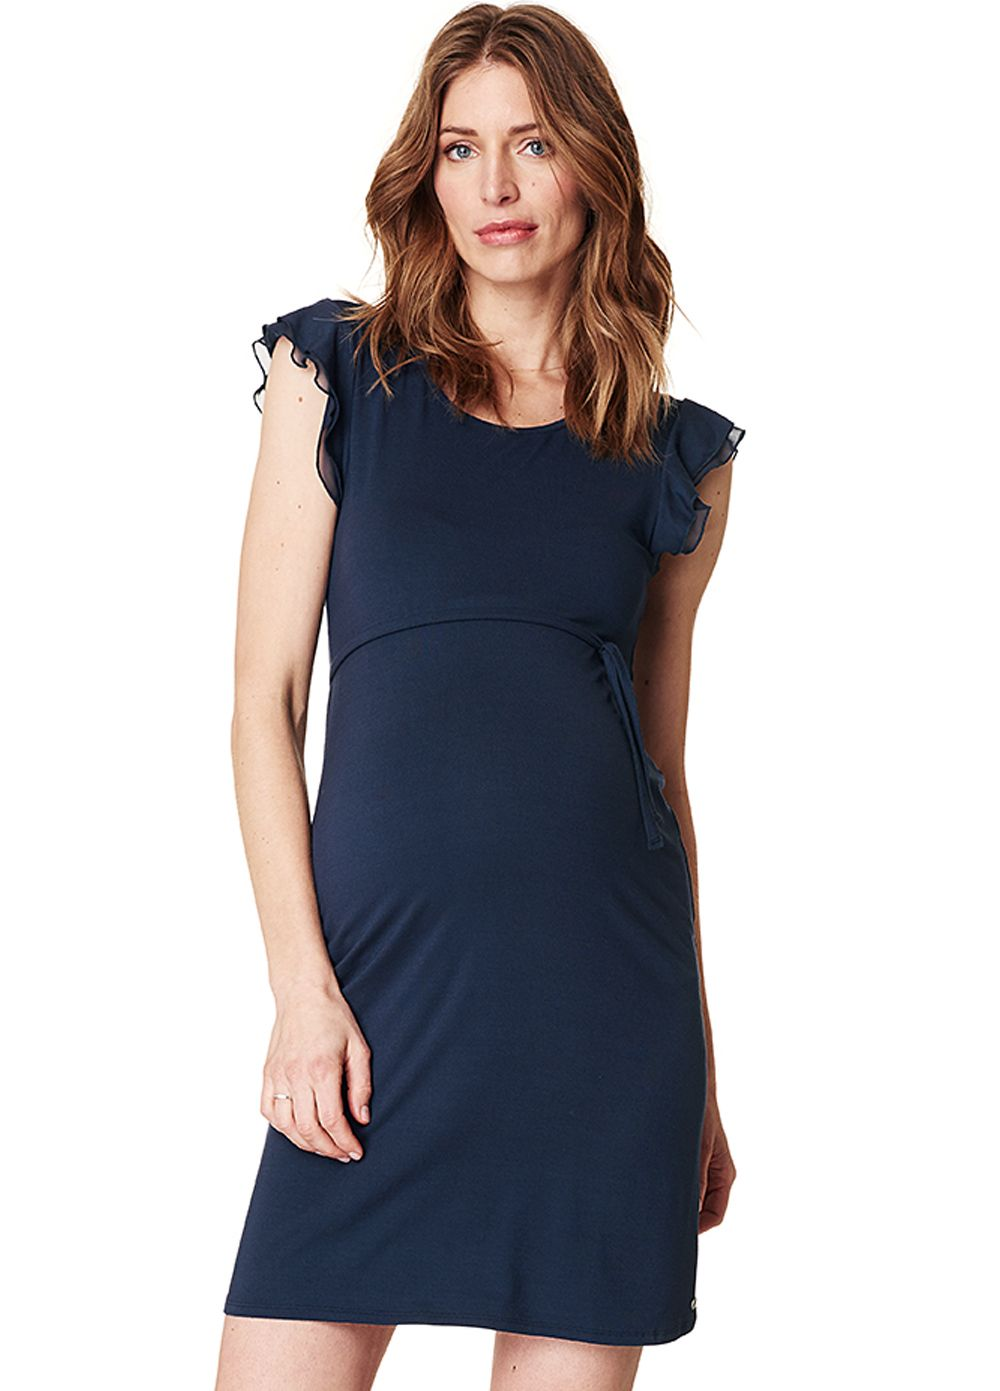 e16027e0a3213 Queen Bee Frill Sleeve Maternity Dress in Night Blue by Esprit Maternity  Wear, Maternity Dresses